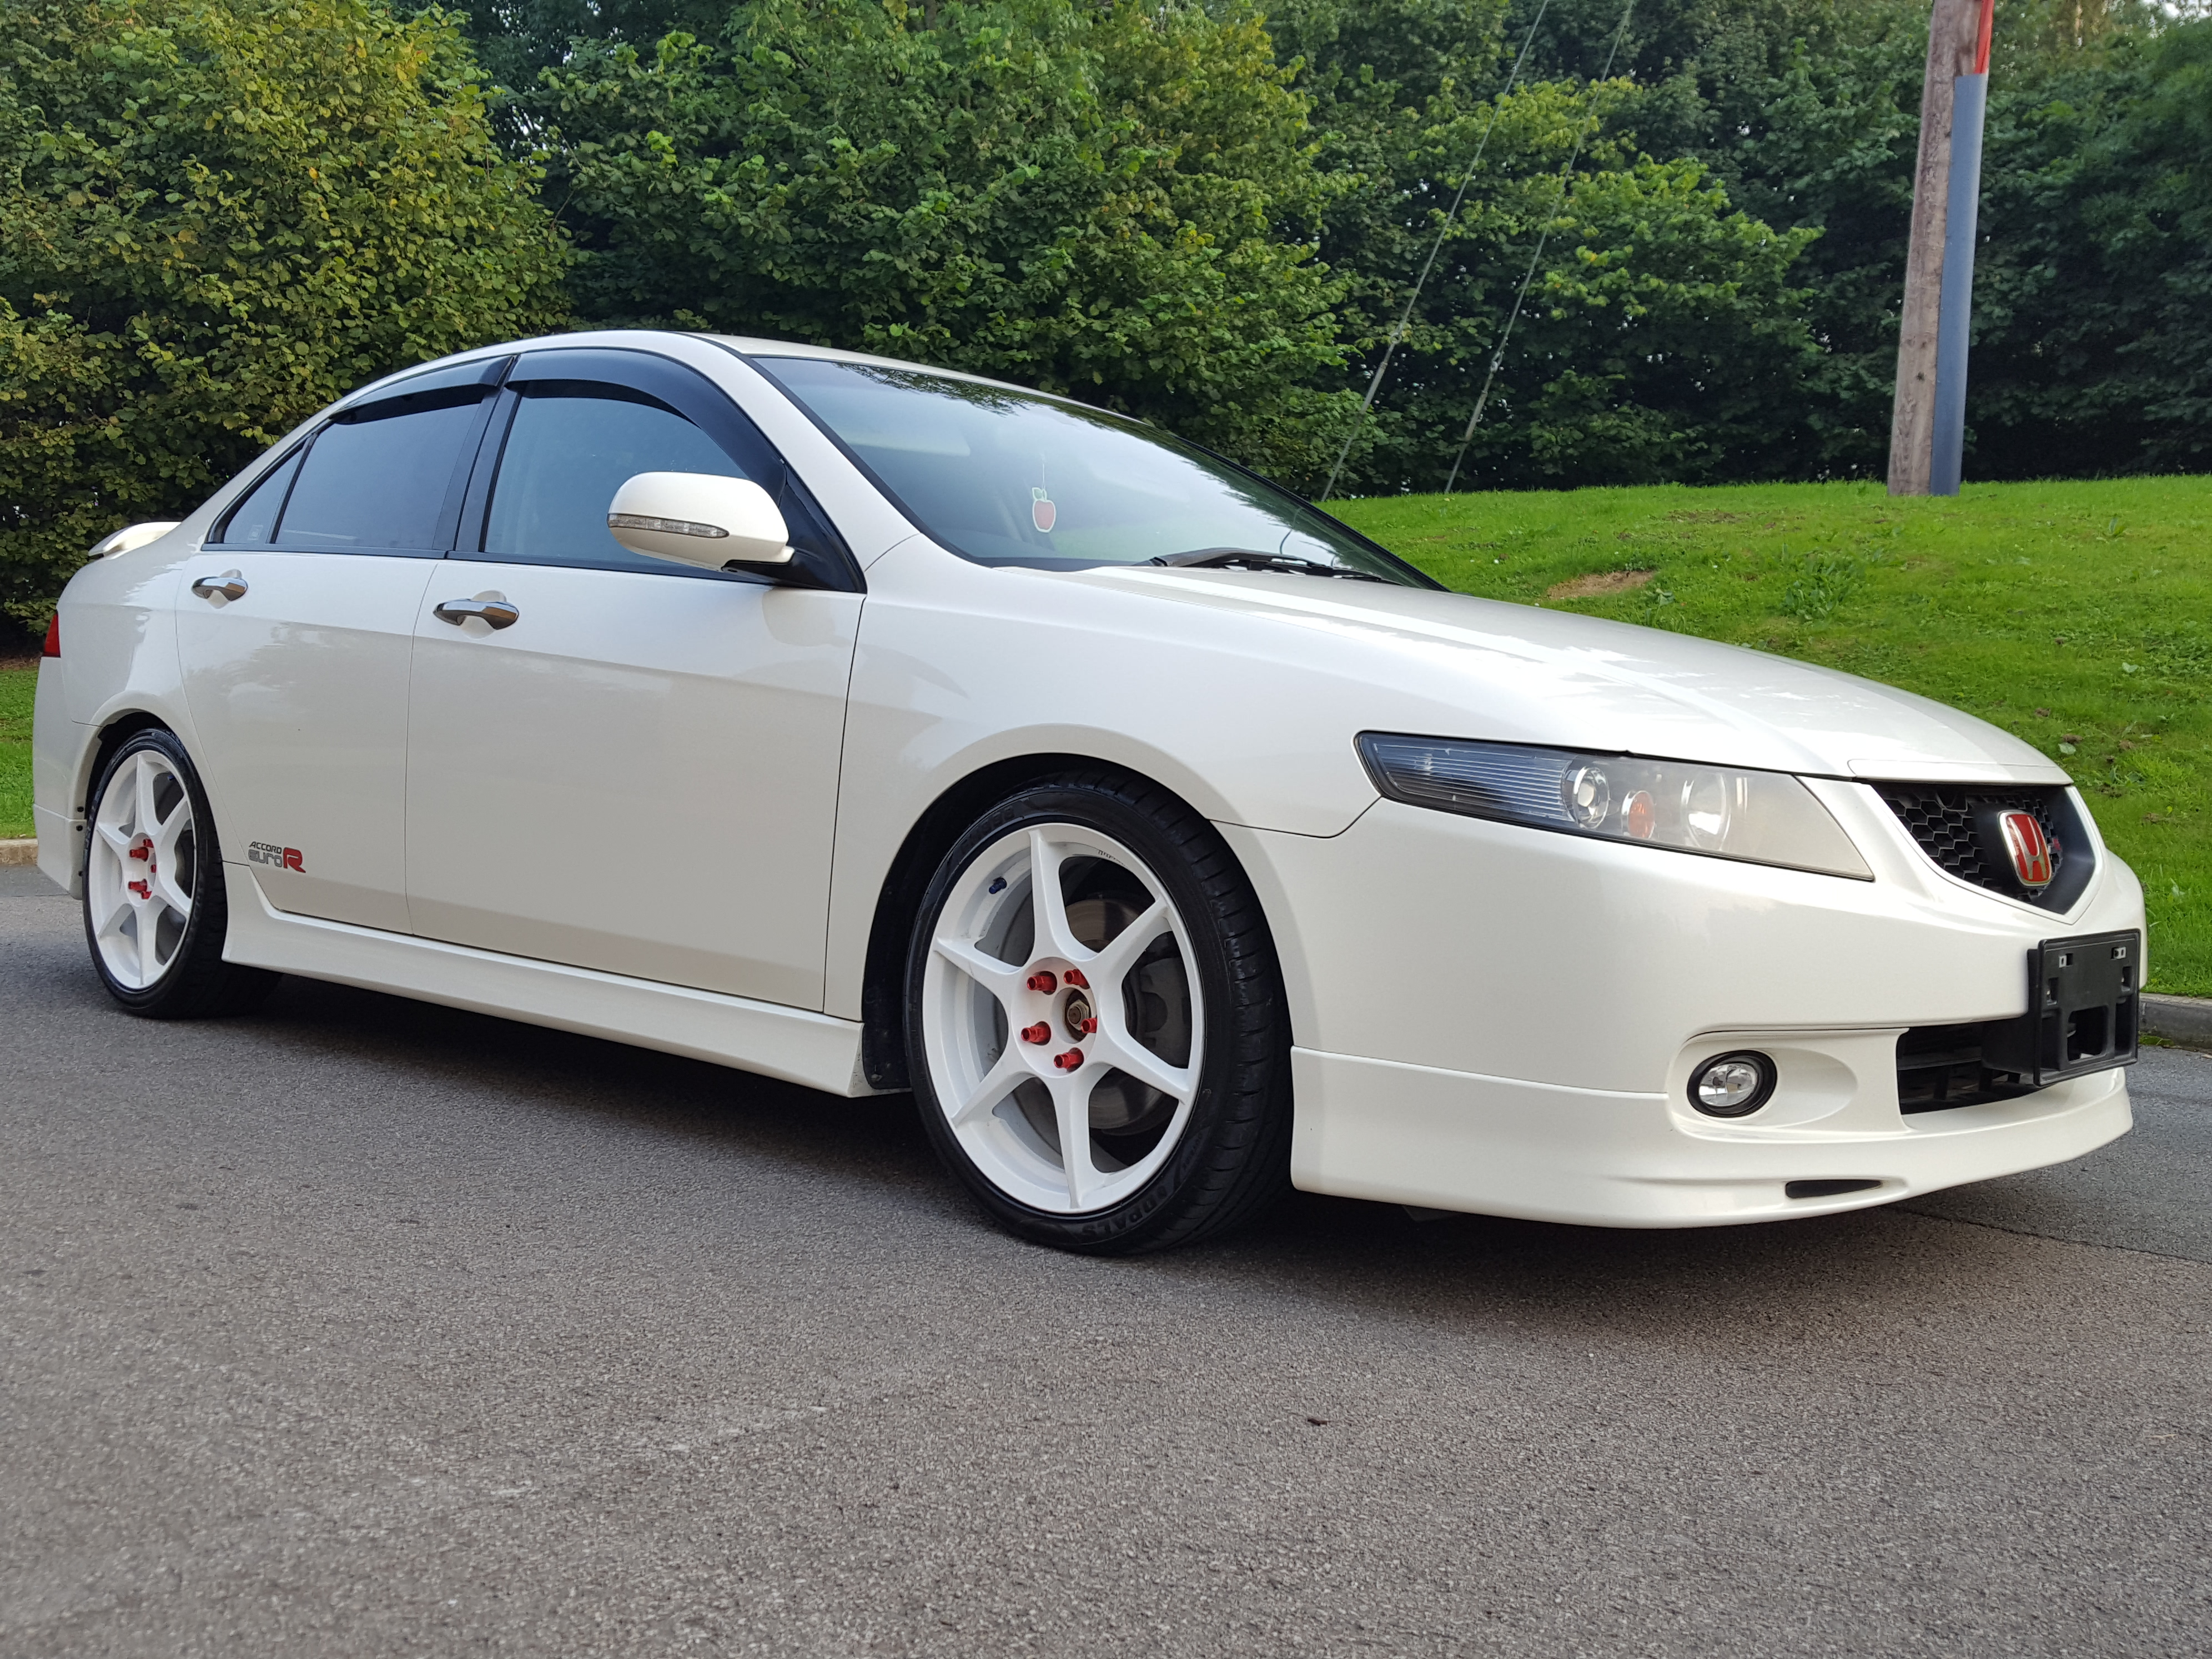 jdm honda accord cl  euro    bhp fresh import dr saloon airedale cars